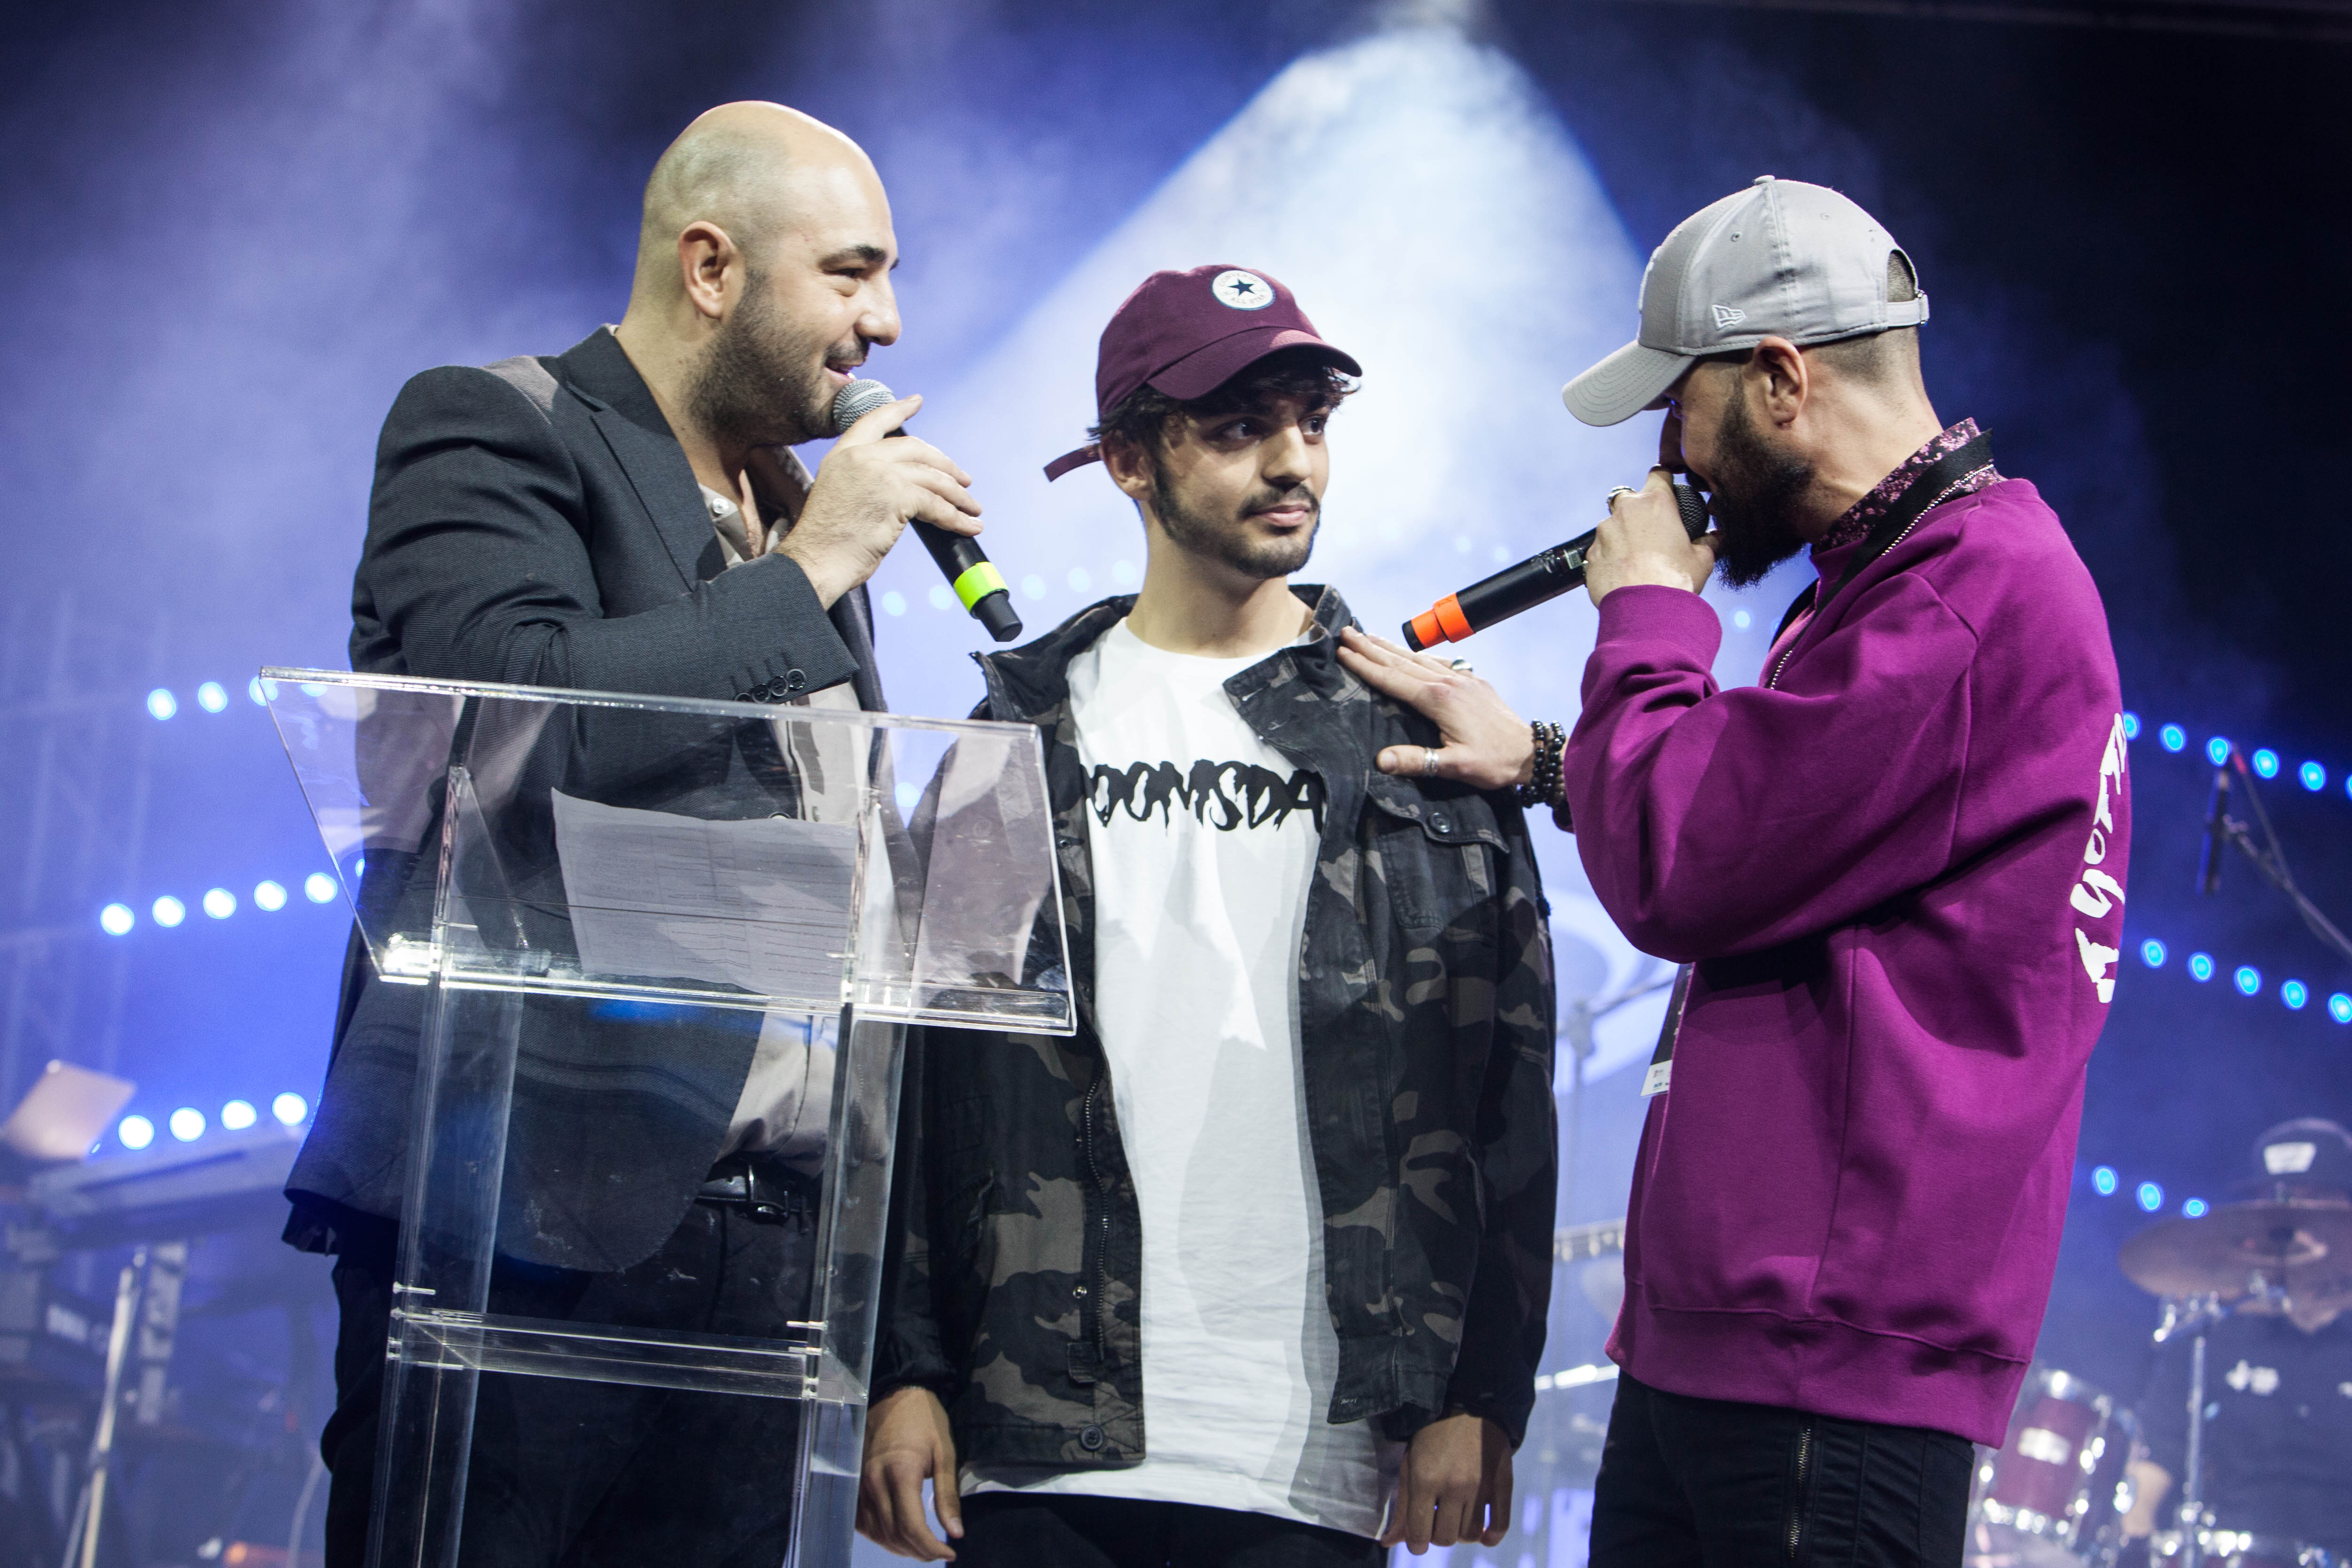 Miglior rapper e Artist of the year: AM - Intervista